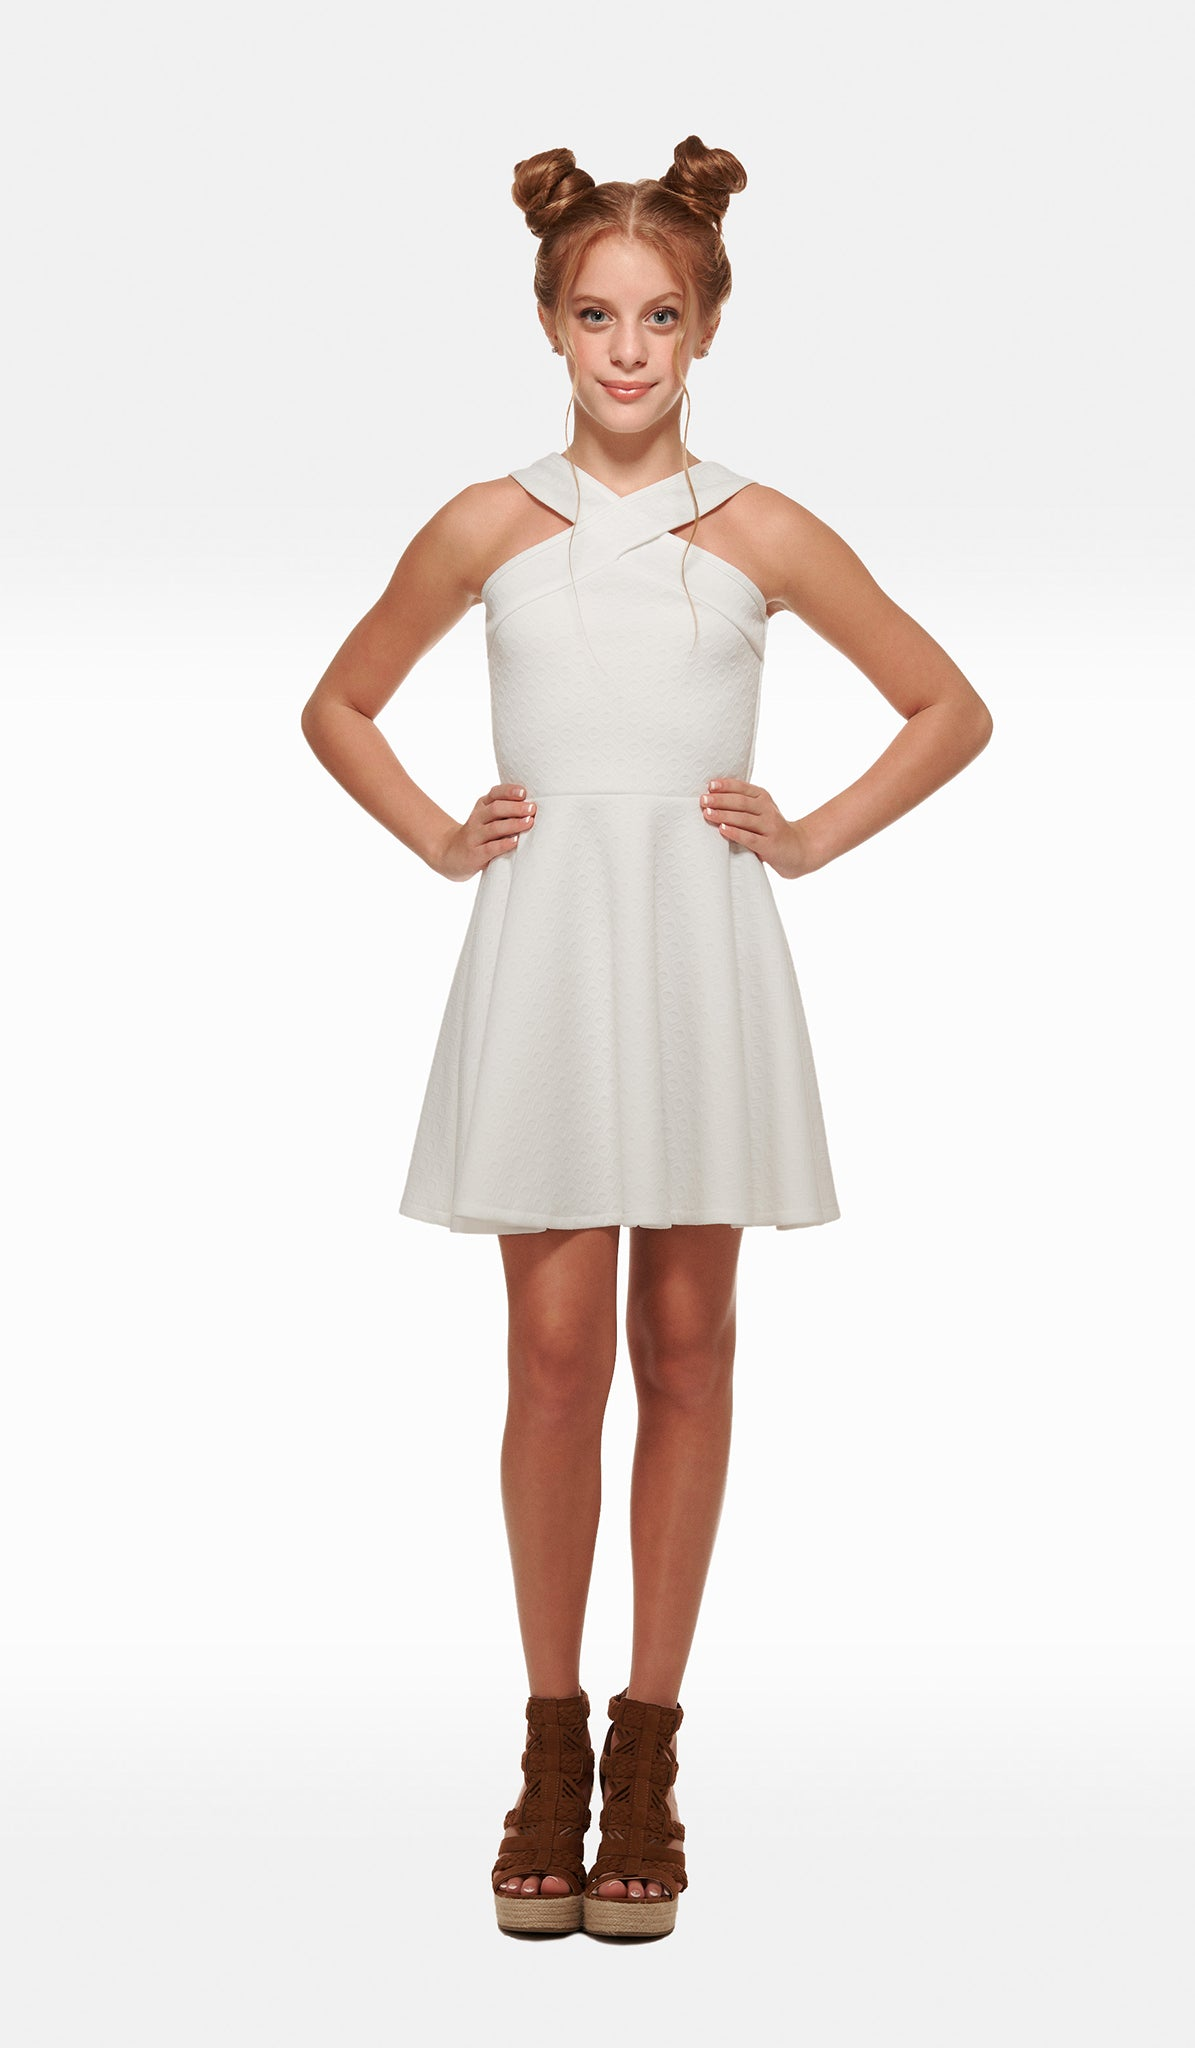 The Sally Miller Tracie Dress - Ivory diamond textured knit fit and flare dress fully lined with thick straps